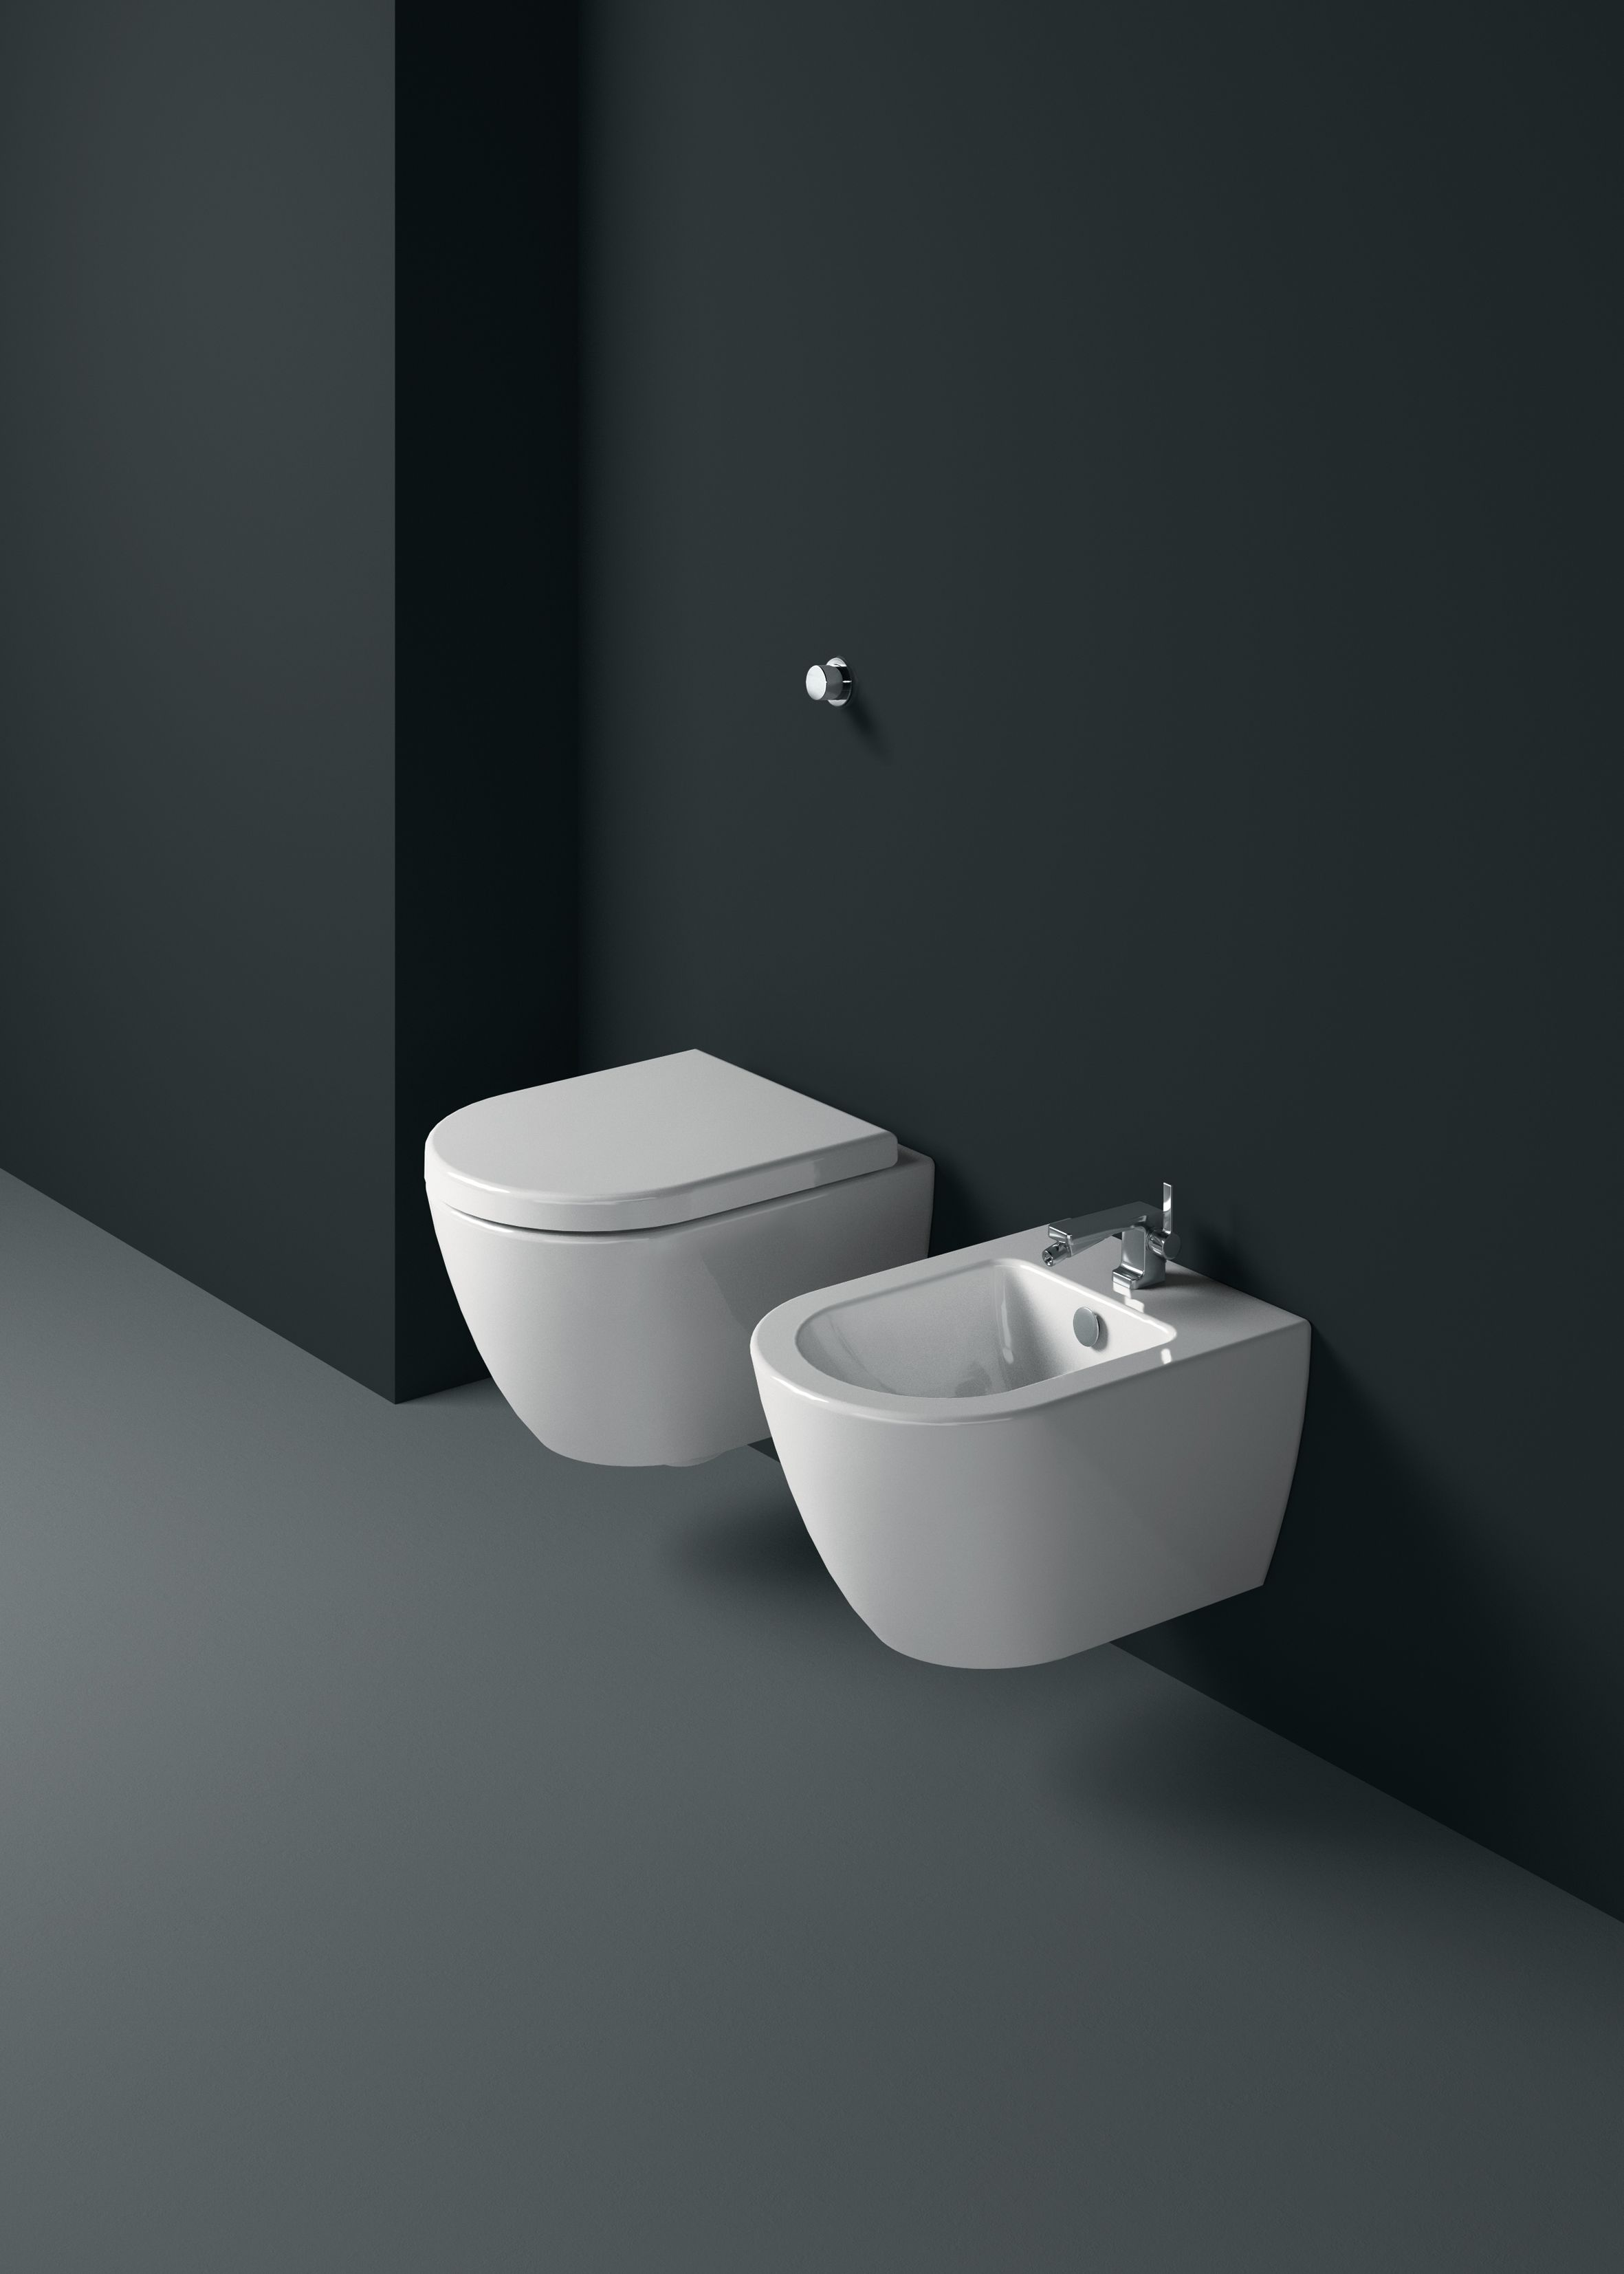 Bathroom Ware Gsi Ceramic Pura Wall Hung Sanitary Ware 50x36 Cm